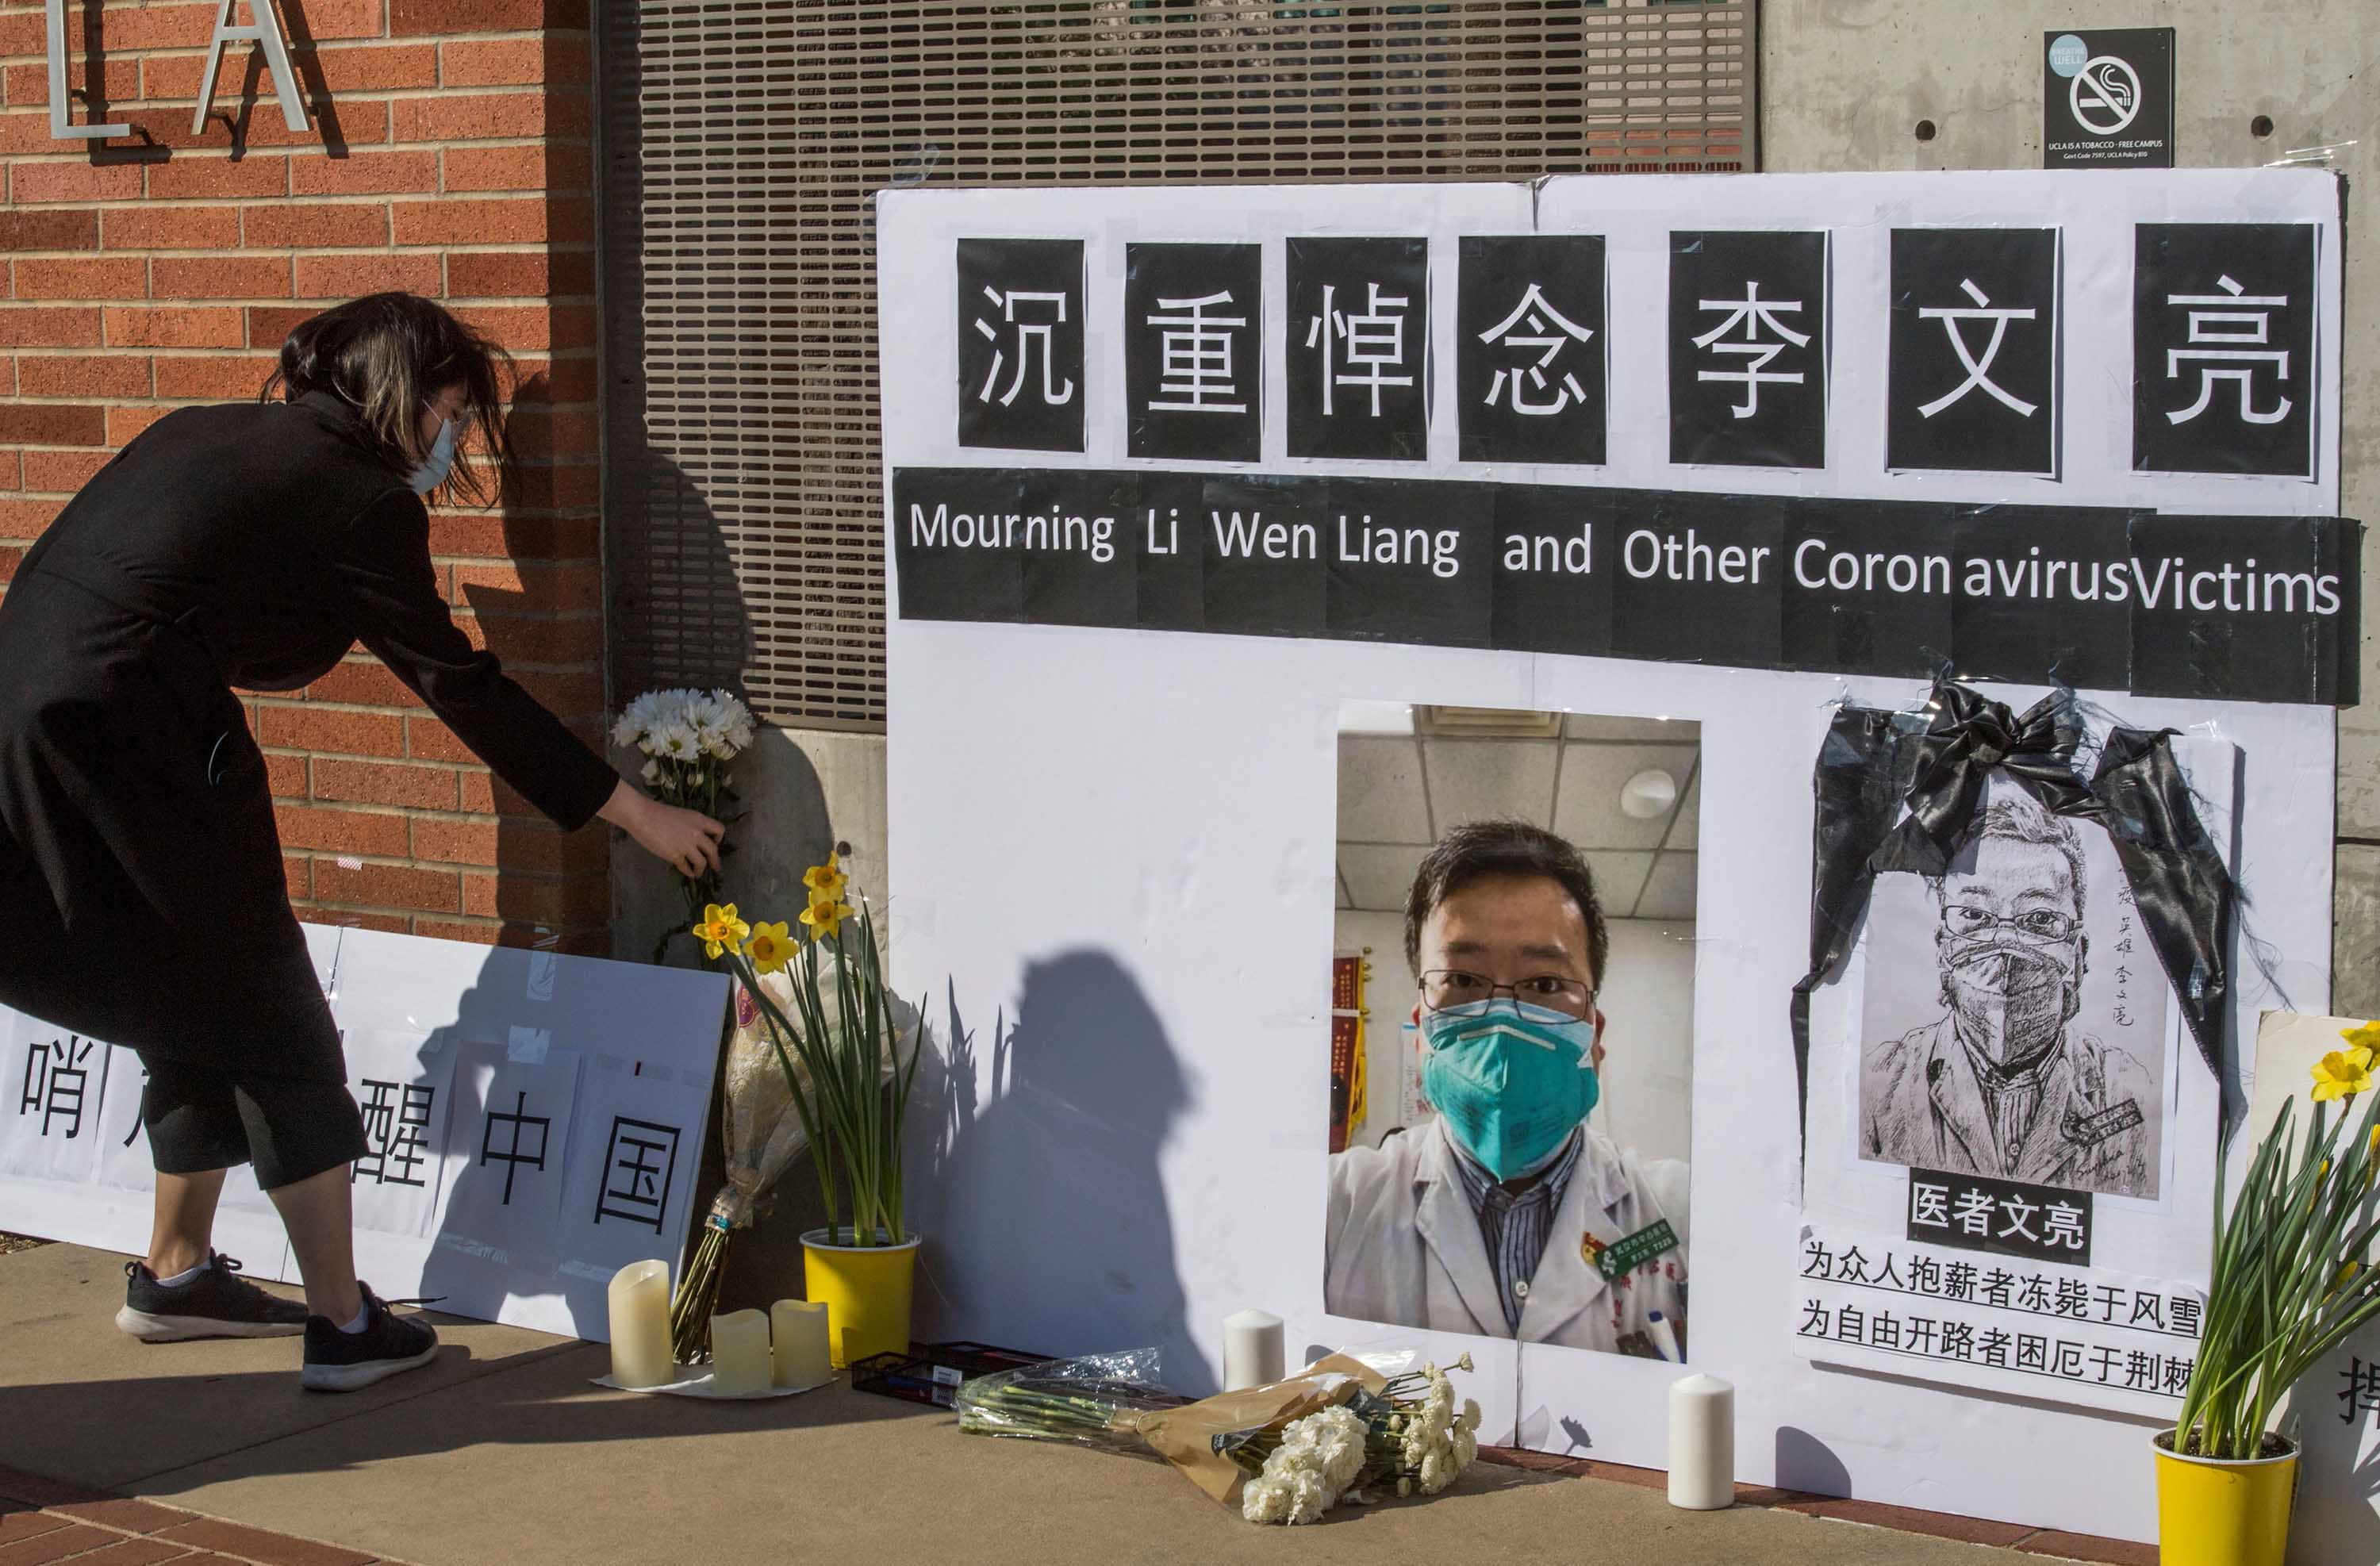 A woman leaves a flower tribute for Dr. Li Wenliang outside the UCLA campus in Westwood, California, on February 15, following news of his death from coronavirus.